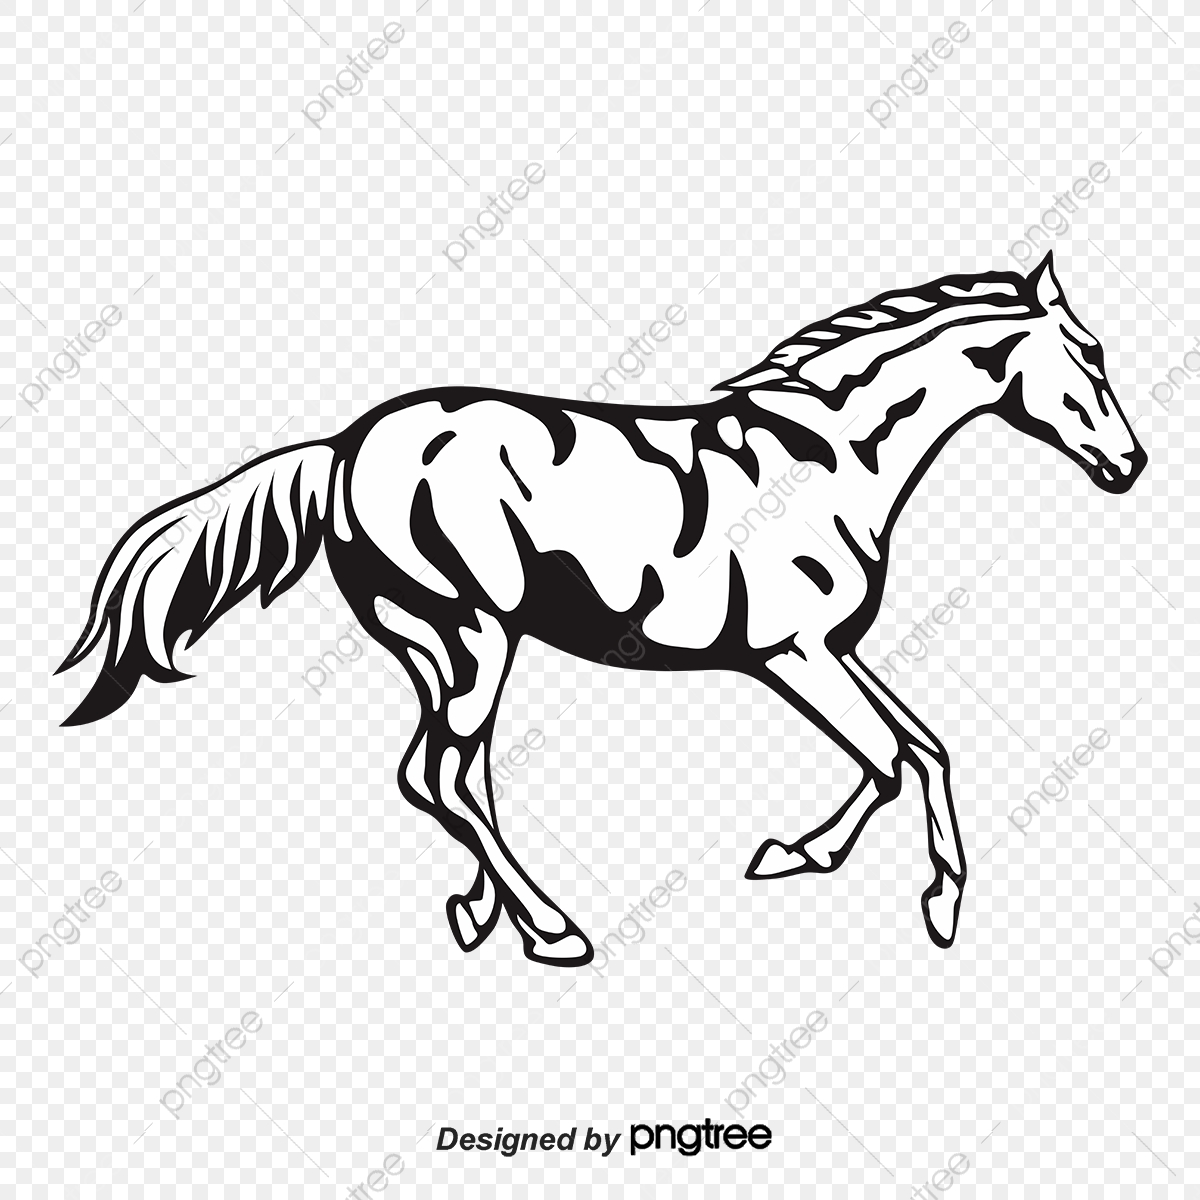 Silhouette Of A Horse Running In Black And White Horse Clipart Black And White Whole Body Silhouette Png And Vector With Transparent Background For Free Download